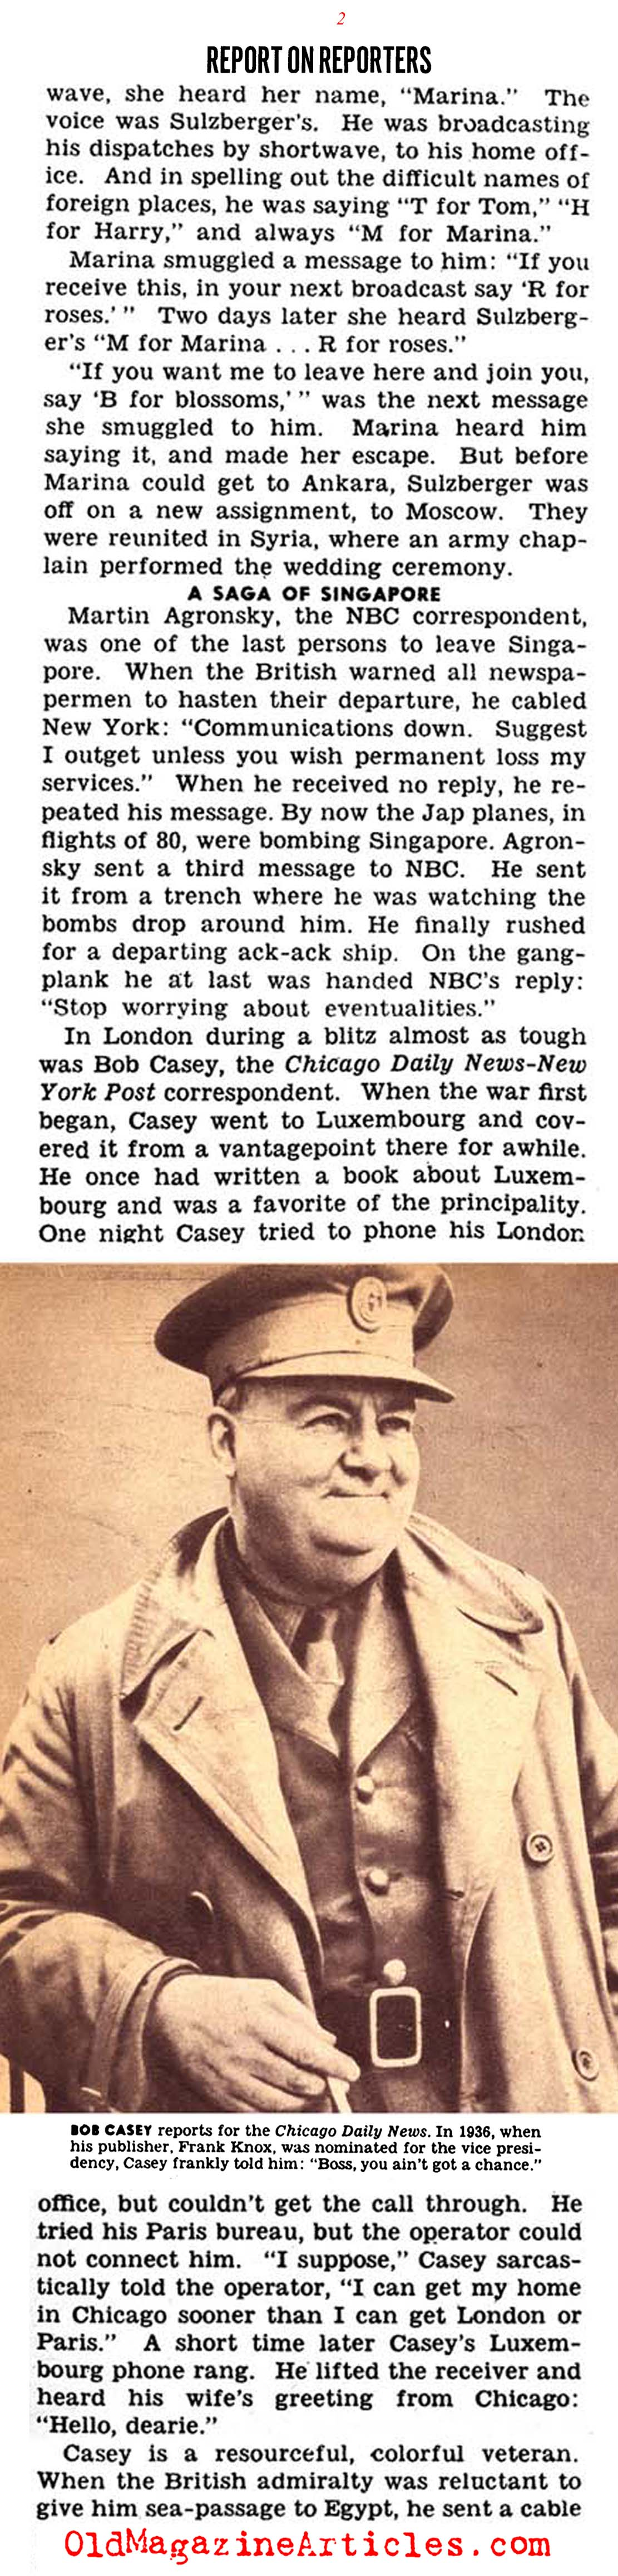 A Report on the War Reporters (Click Magazine, 1944)